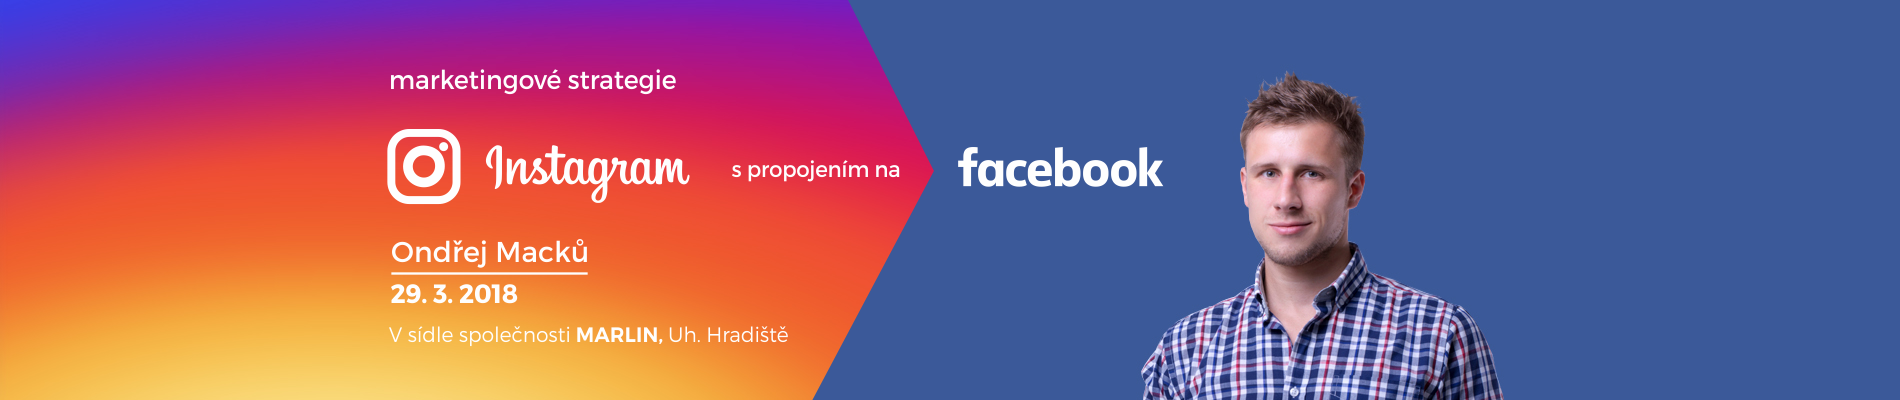 Instagram s propojením na Facebook – marketingové strategie